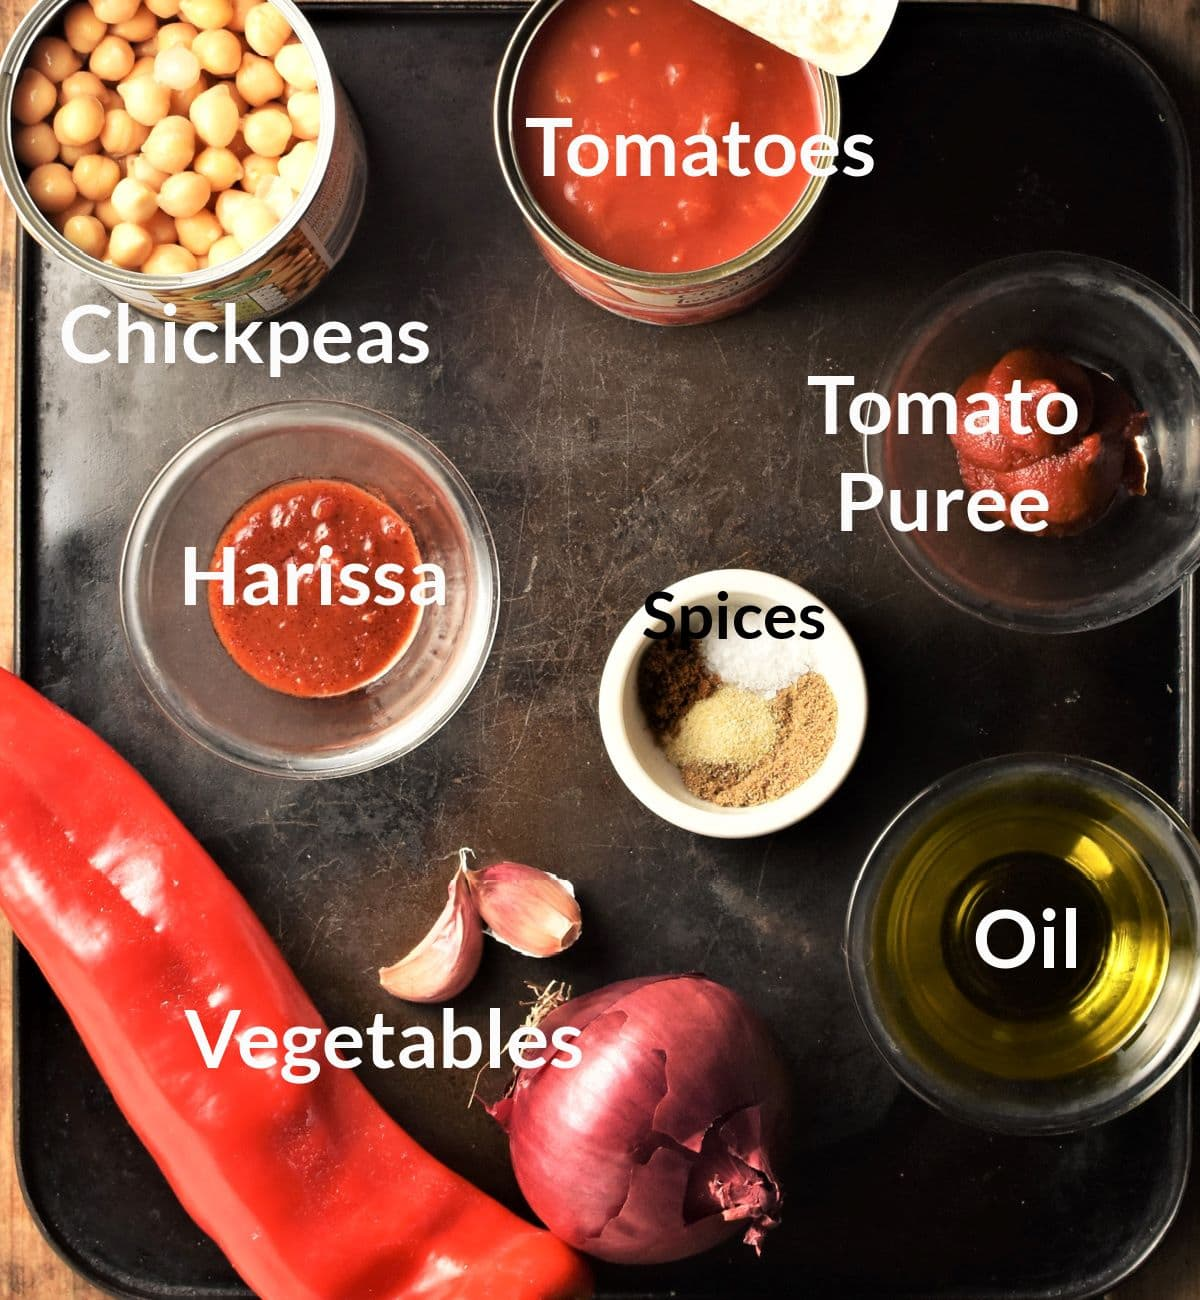 Ingredients for making vegan chickpea stew in individual dishes.